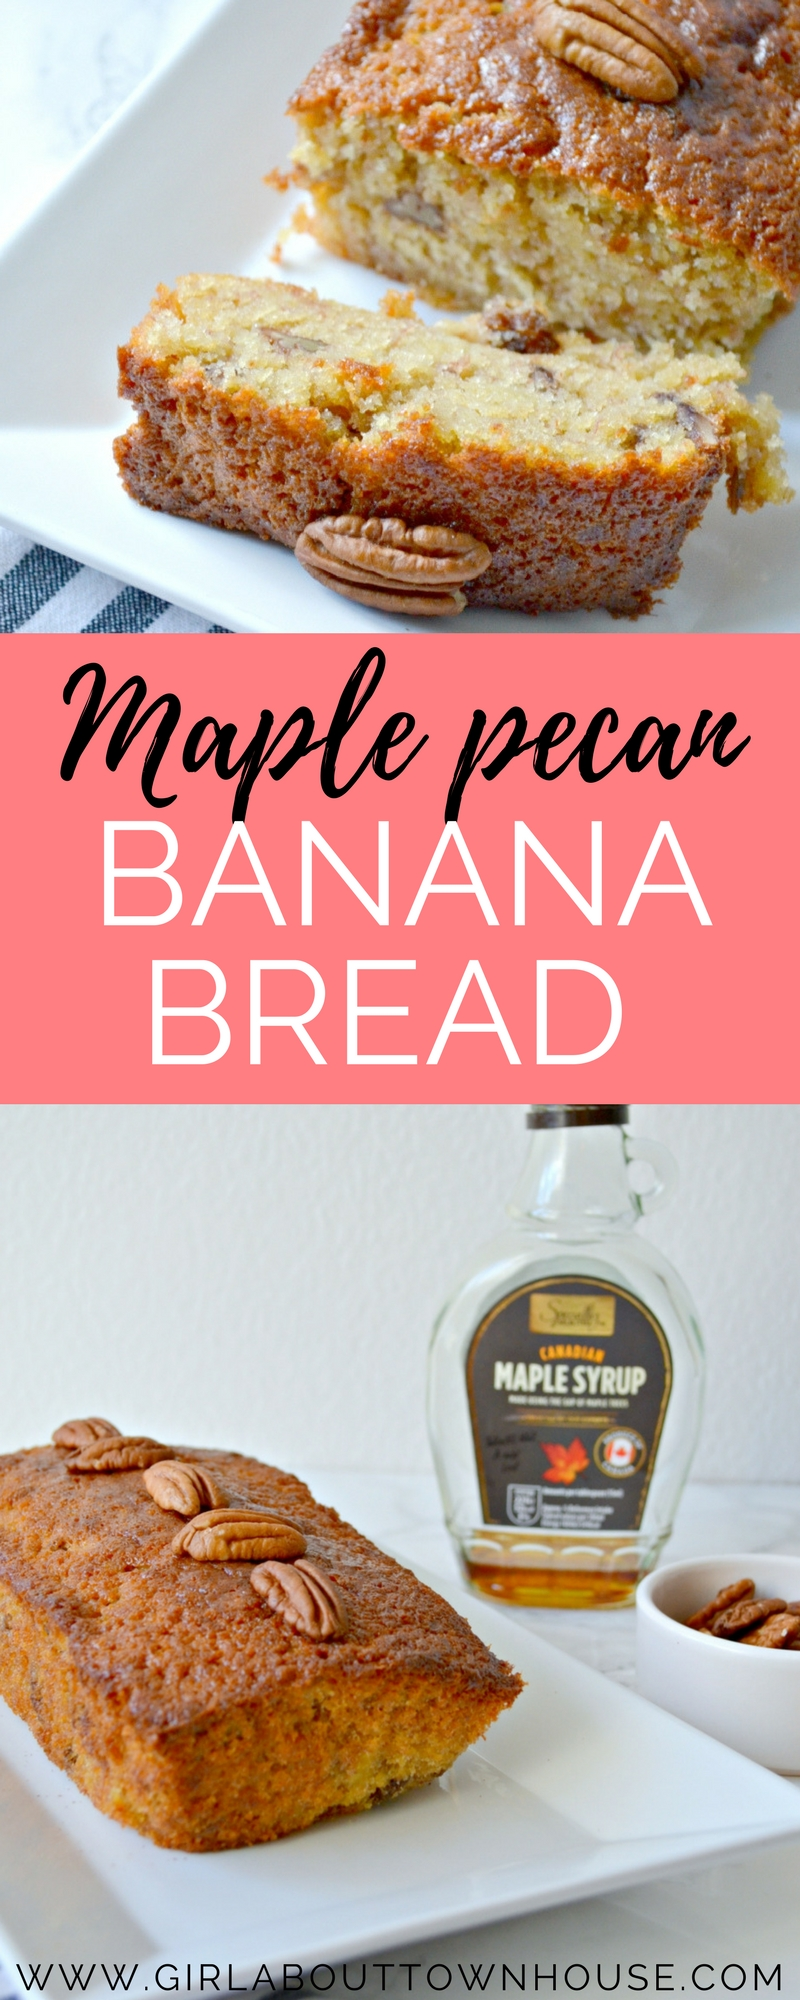 Super easy maple pecan banana bread recipe. The ideal way to use up those leftover bananas. It's also an ideal recipe for baking with kids, because it's so simple.